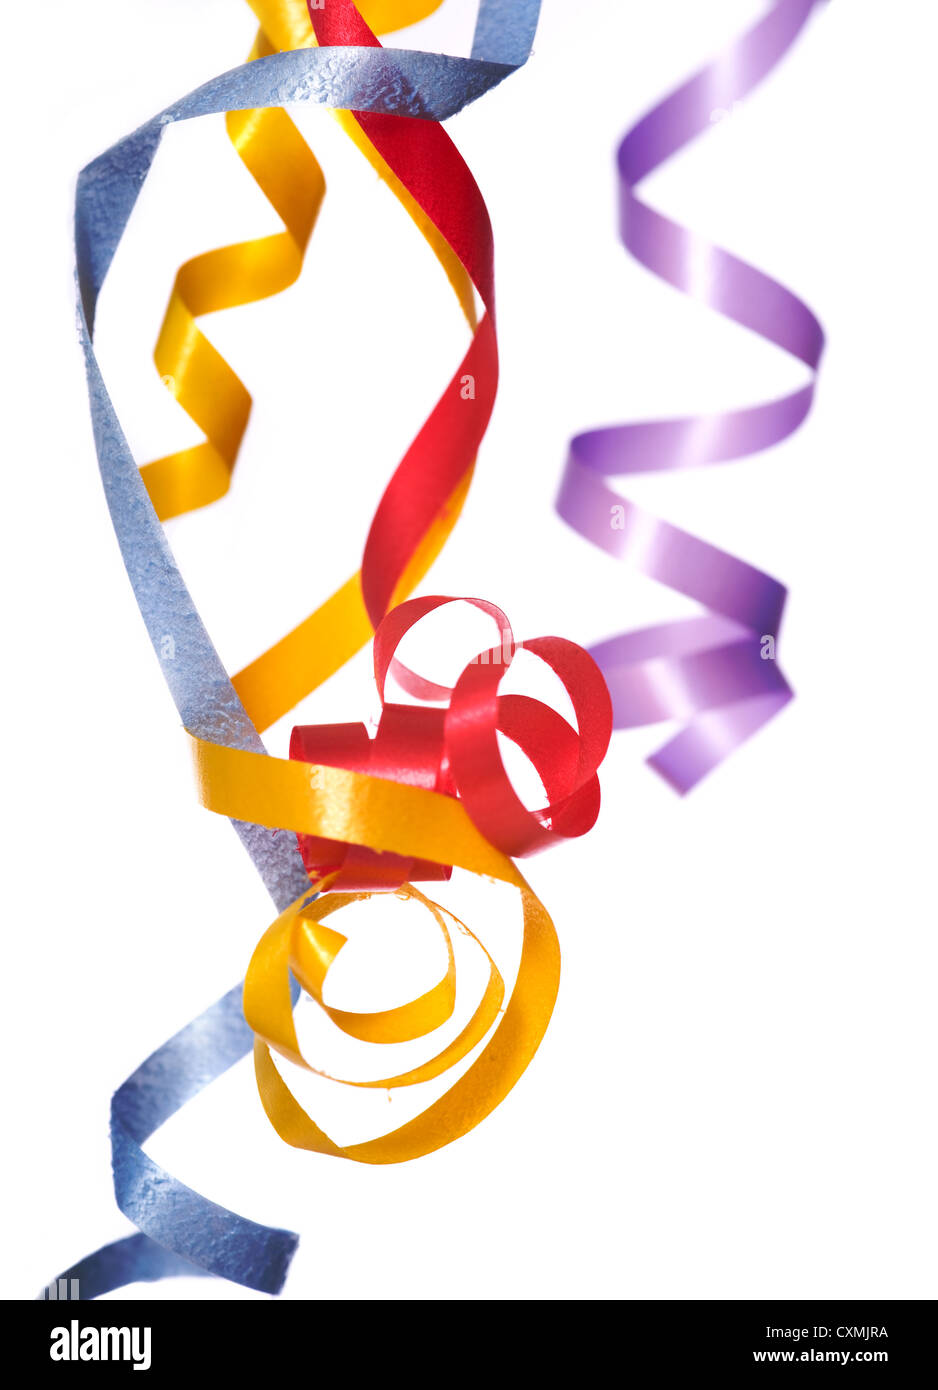 Colorful, curly, ribbon streamers on a white background with copy space - Stock Image